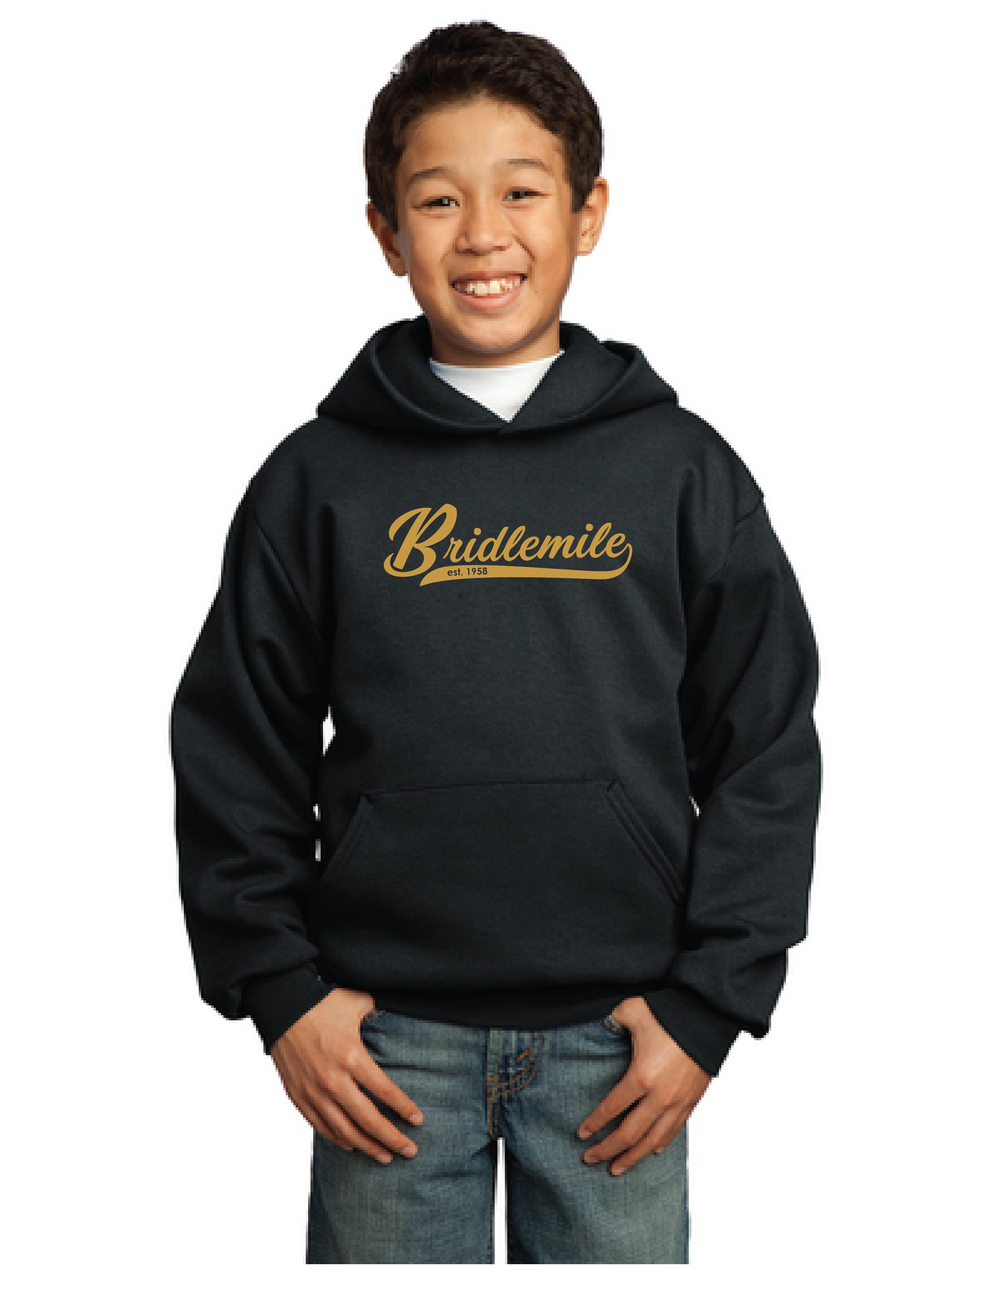 Bridlemile 60th Anniversary Designs_60th Pullover Hoodie Youth.png